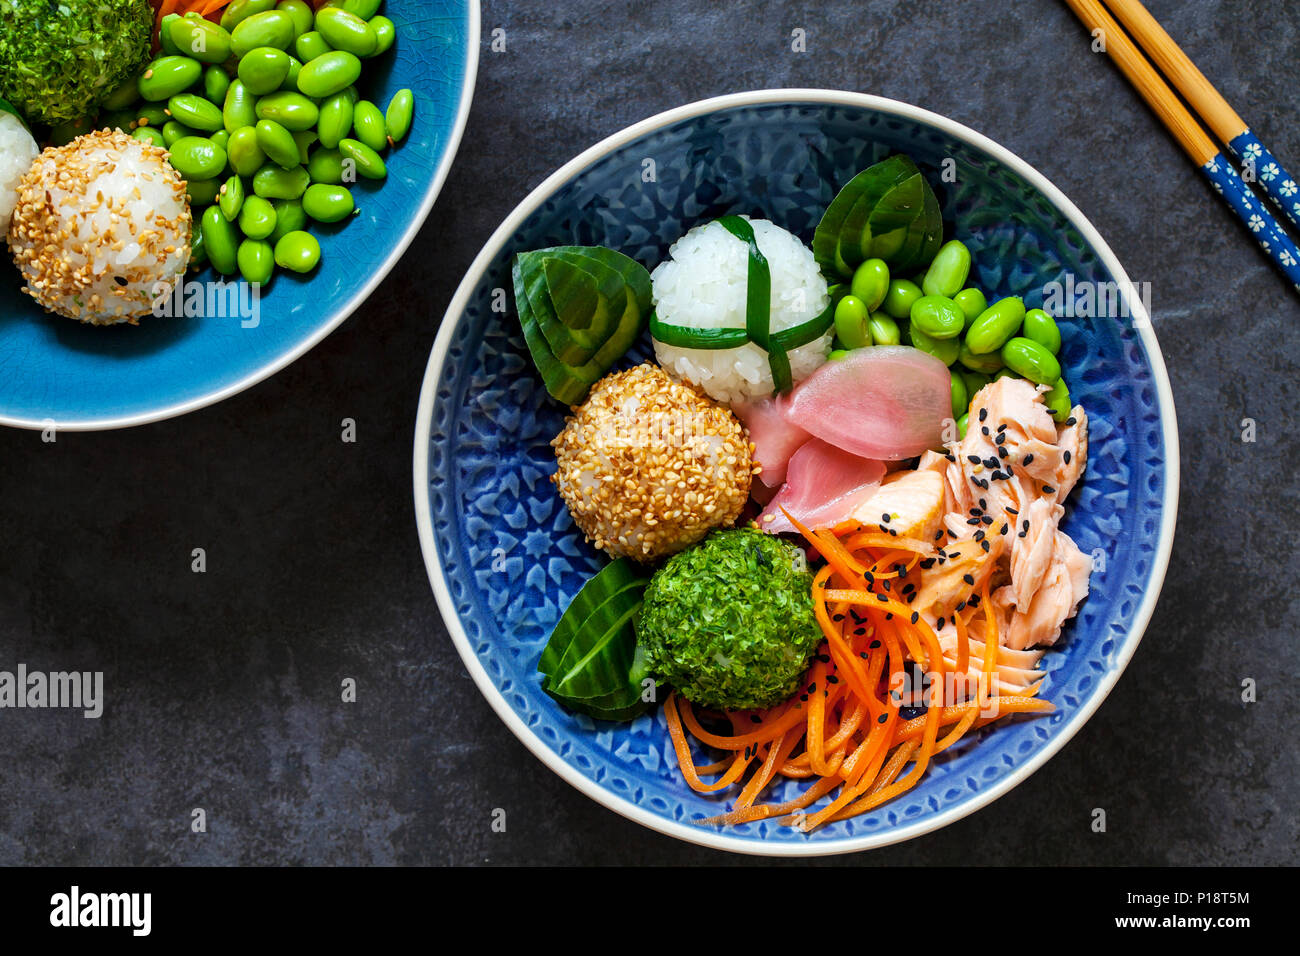 Japanese onigiri sushi rice balls with salmon and soy beans - Stock Image